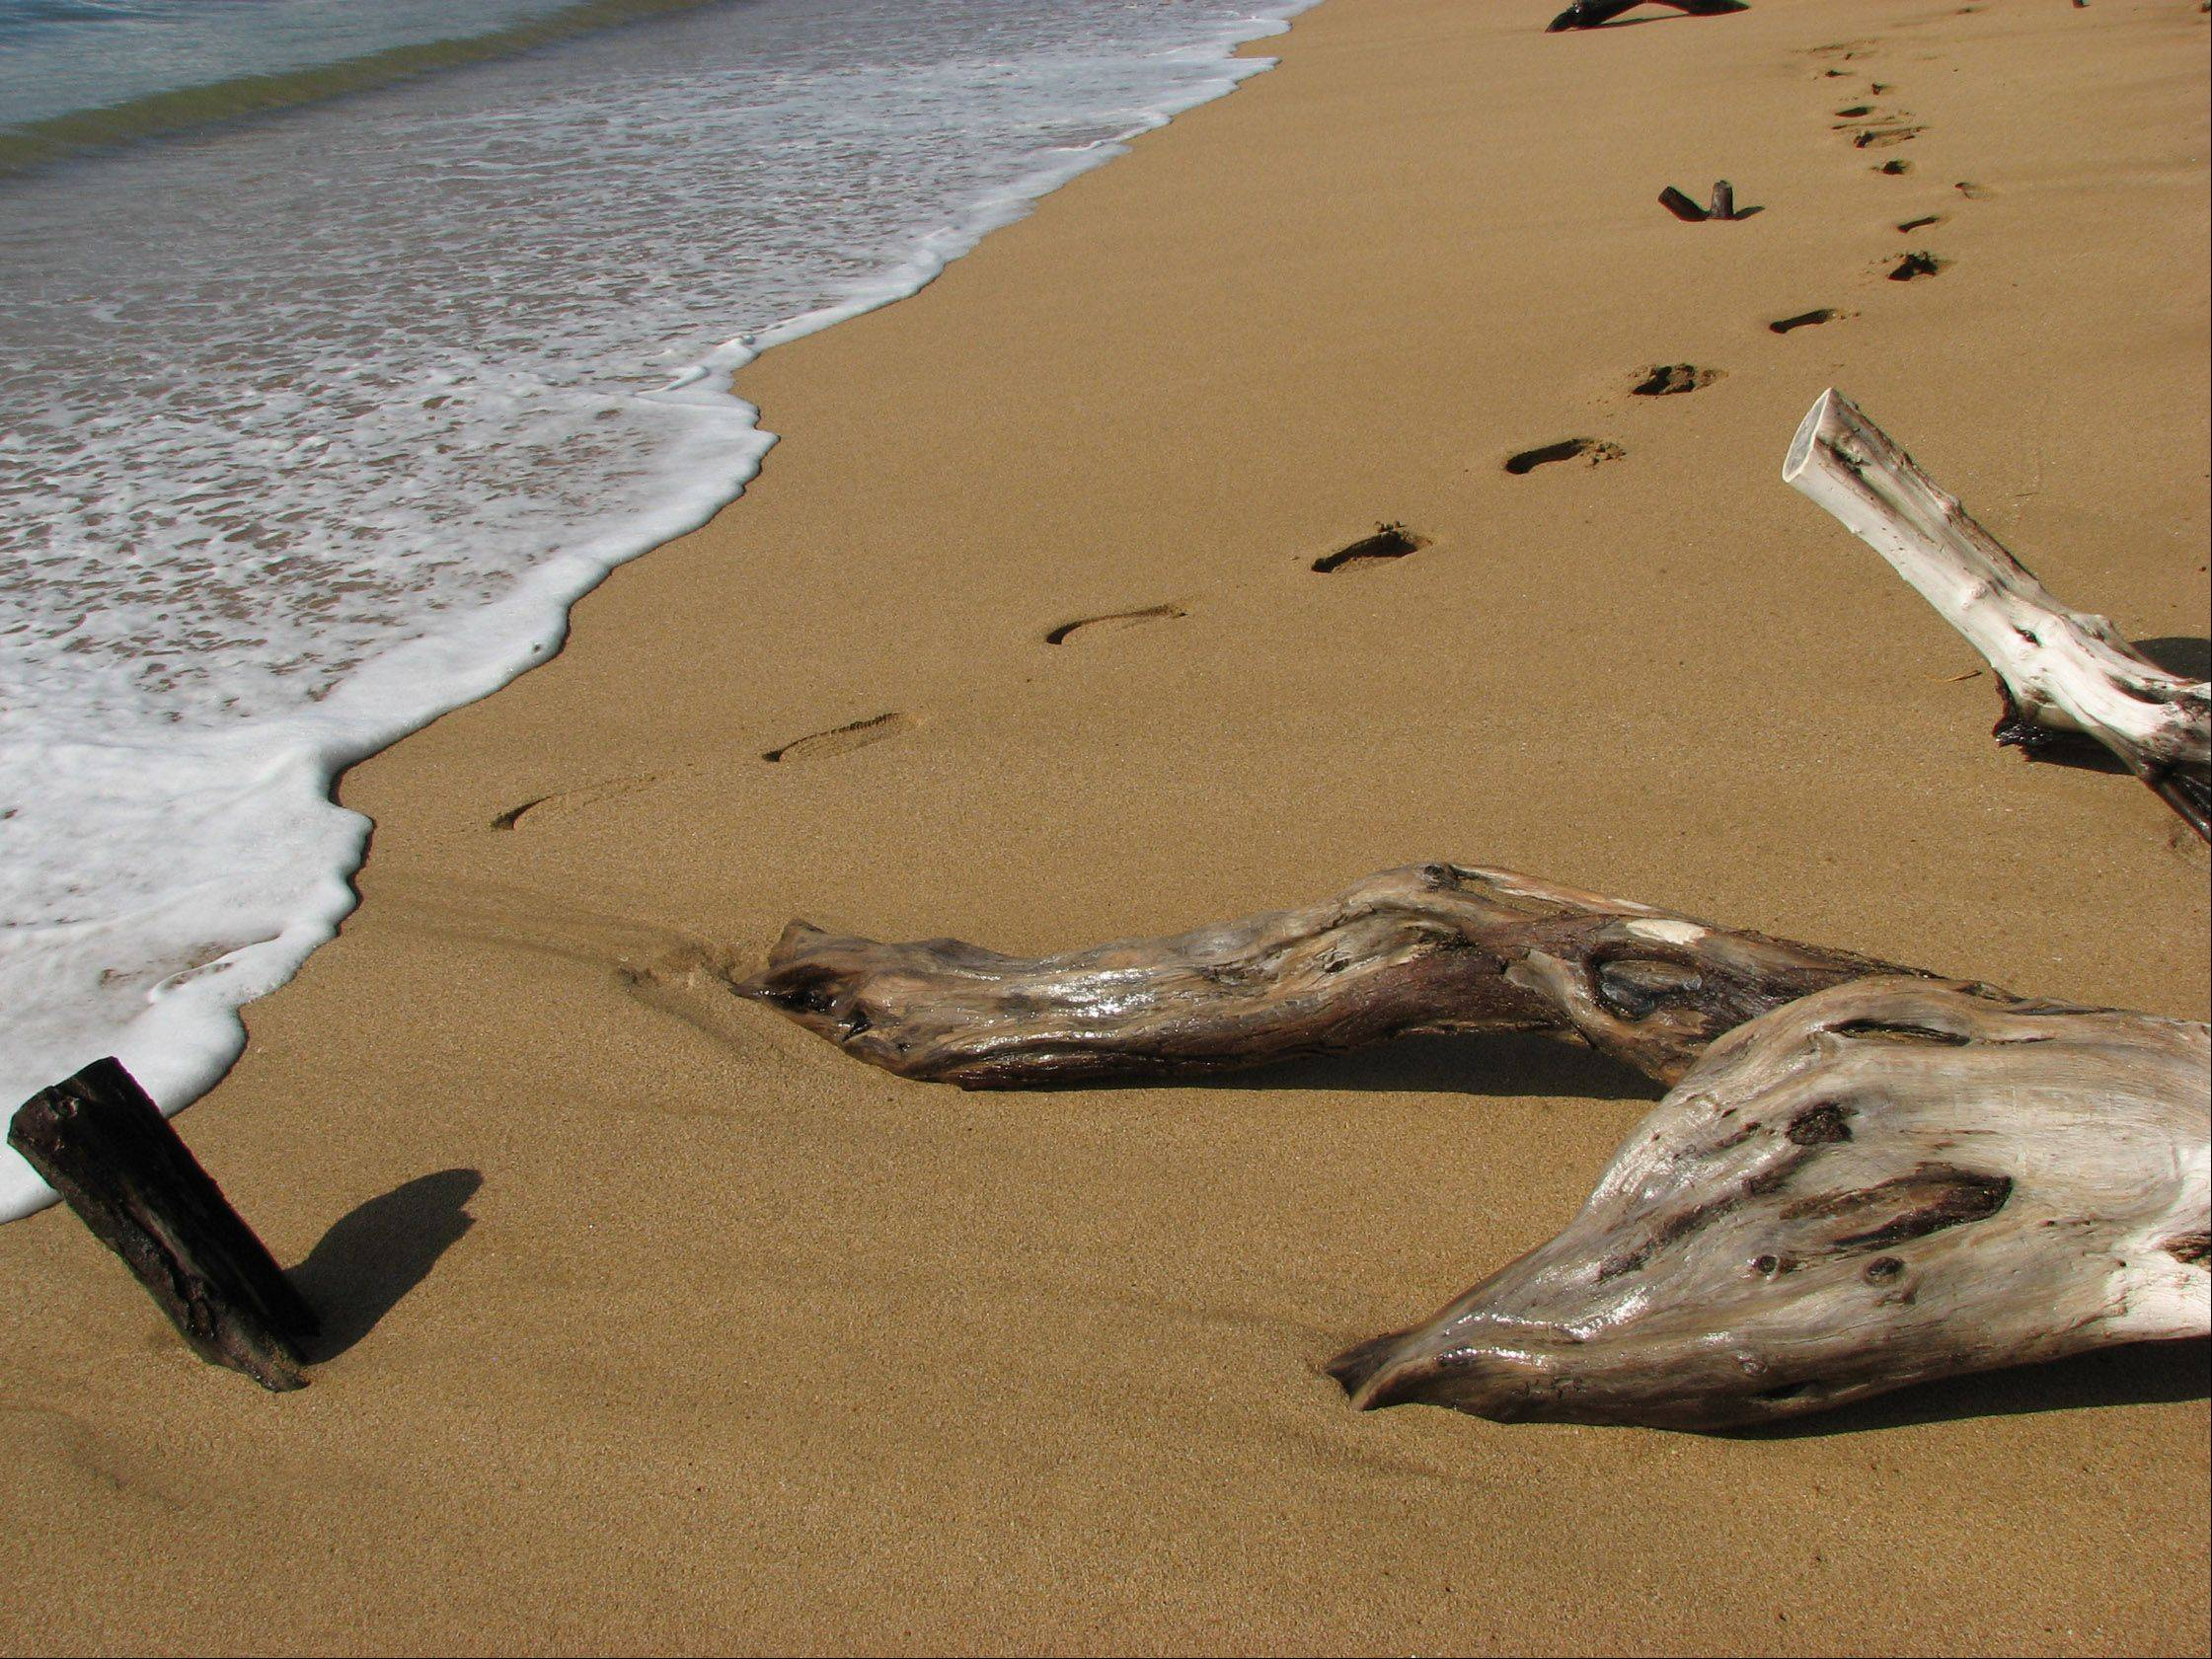 Driftwood, footsteps in the sand, and the waves create a calming effect on a Maui beach earlier this month.